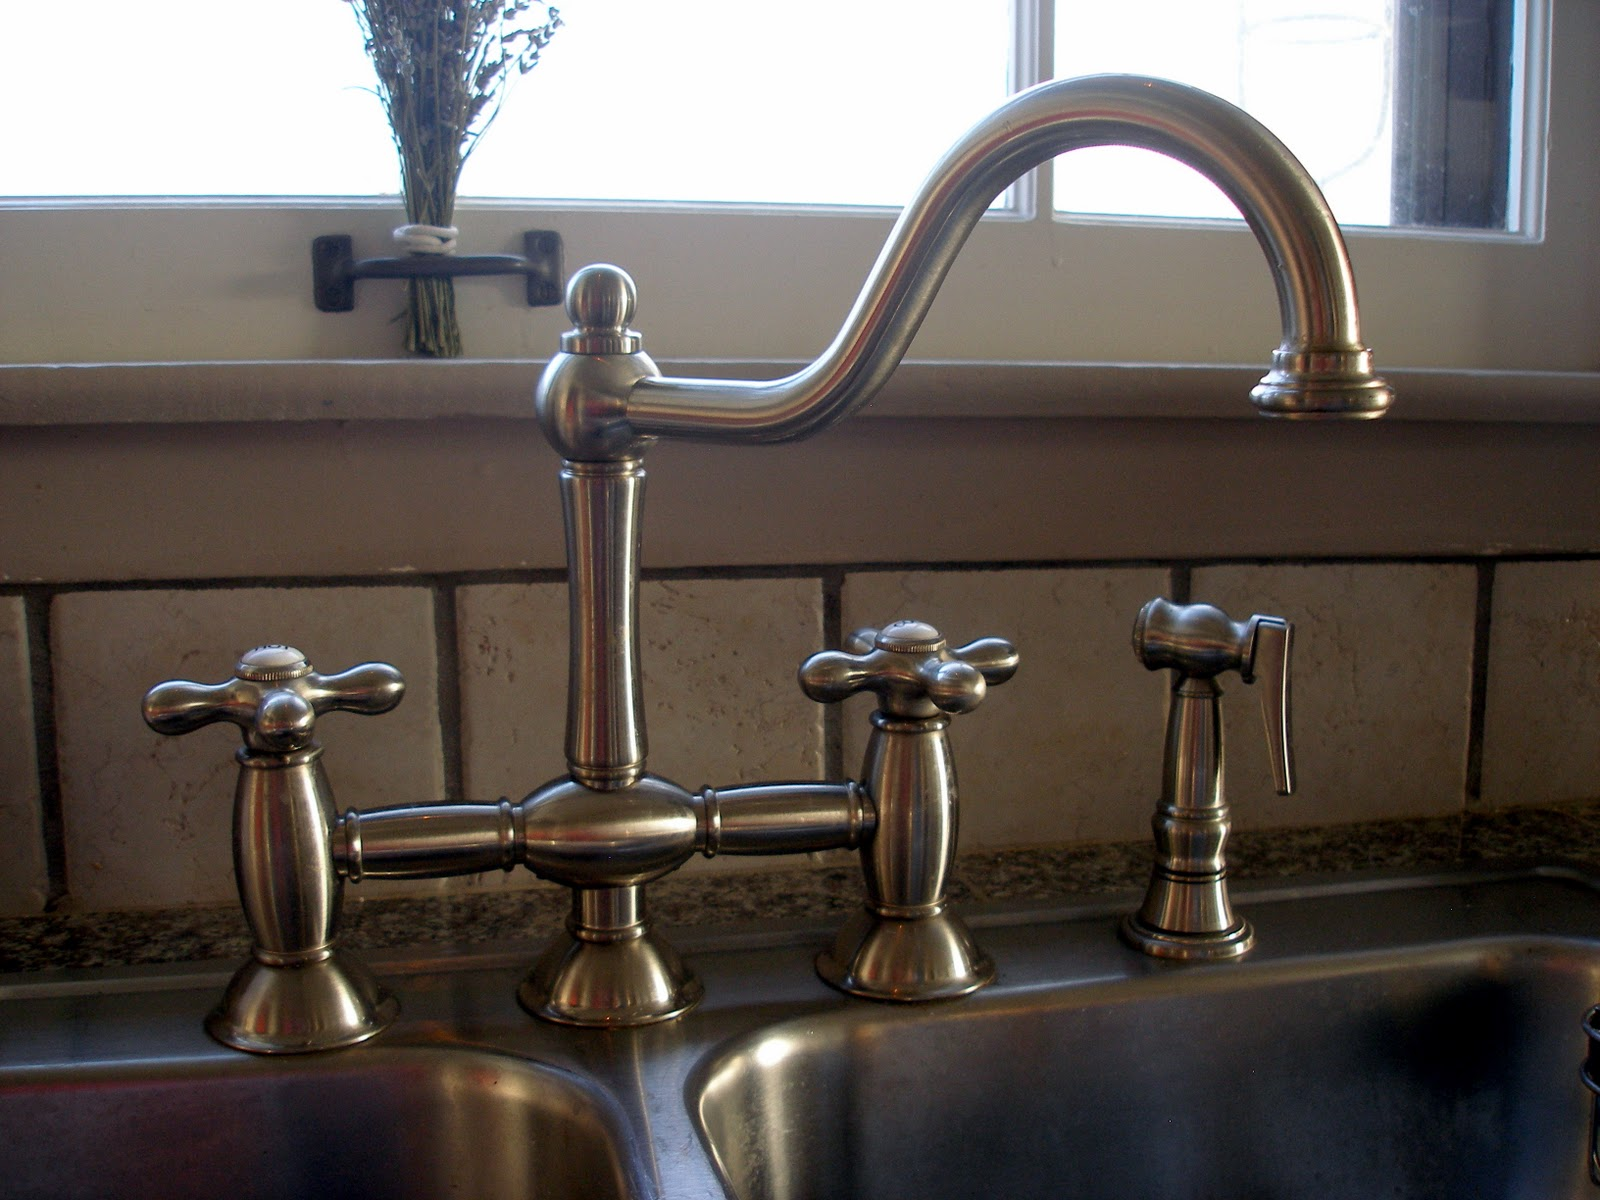 Bridge Faucets for Vintage Bathroom Sinks